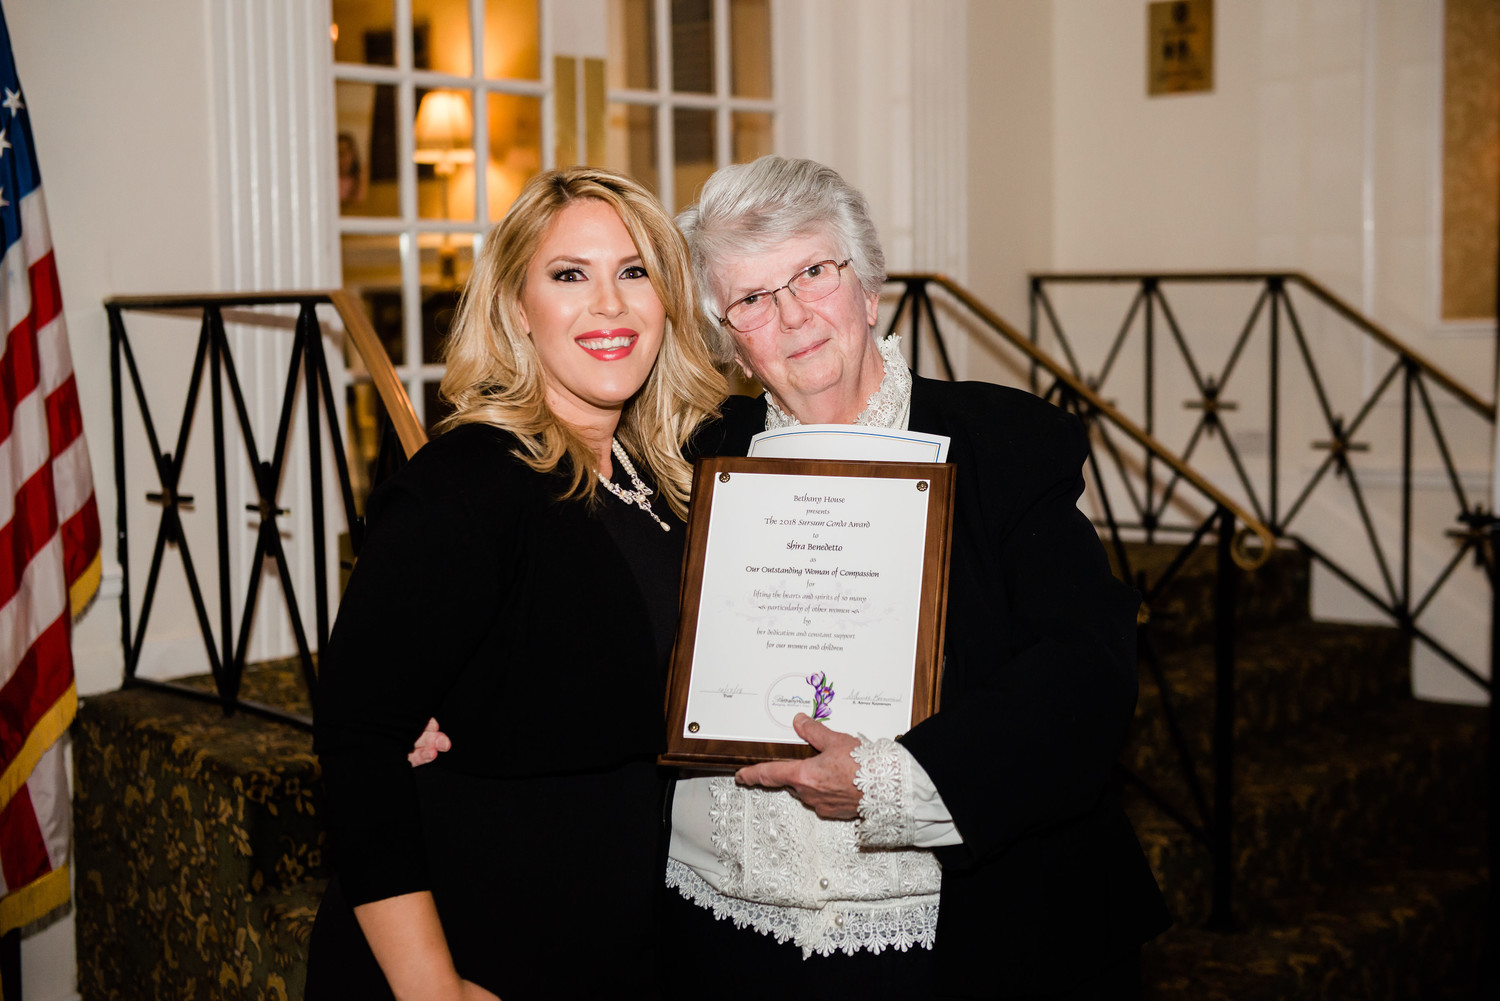 Oceanside resident Shira Benedetto, right, was honored with the Outstanding Woman of Compassion plaque by Sister Aimee Koonmen, the founder and executive director of Bethany House.